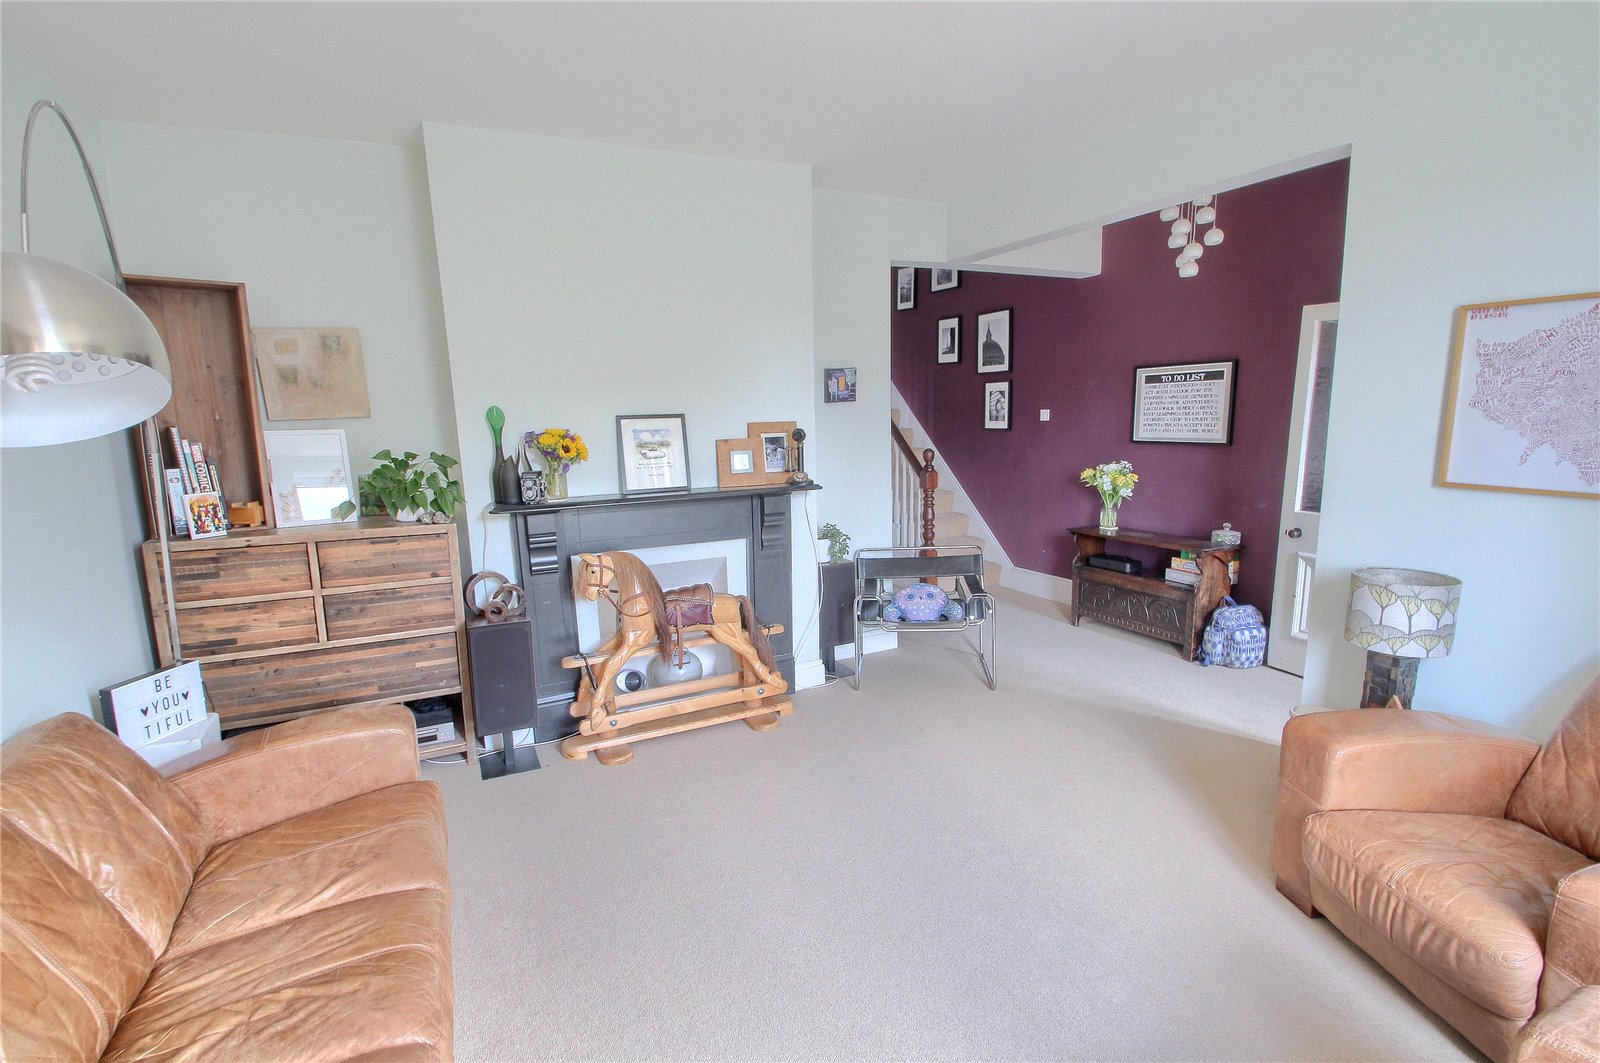 5 bed house for sale in Varo Terrace, Stockton-on-Tees  - Property Image 2